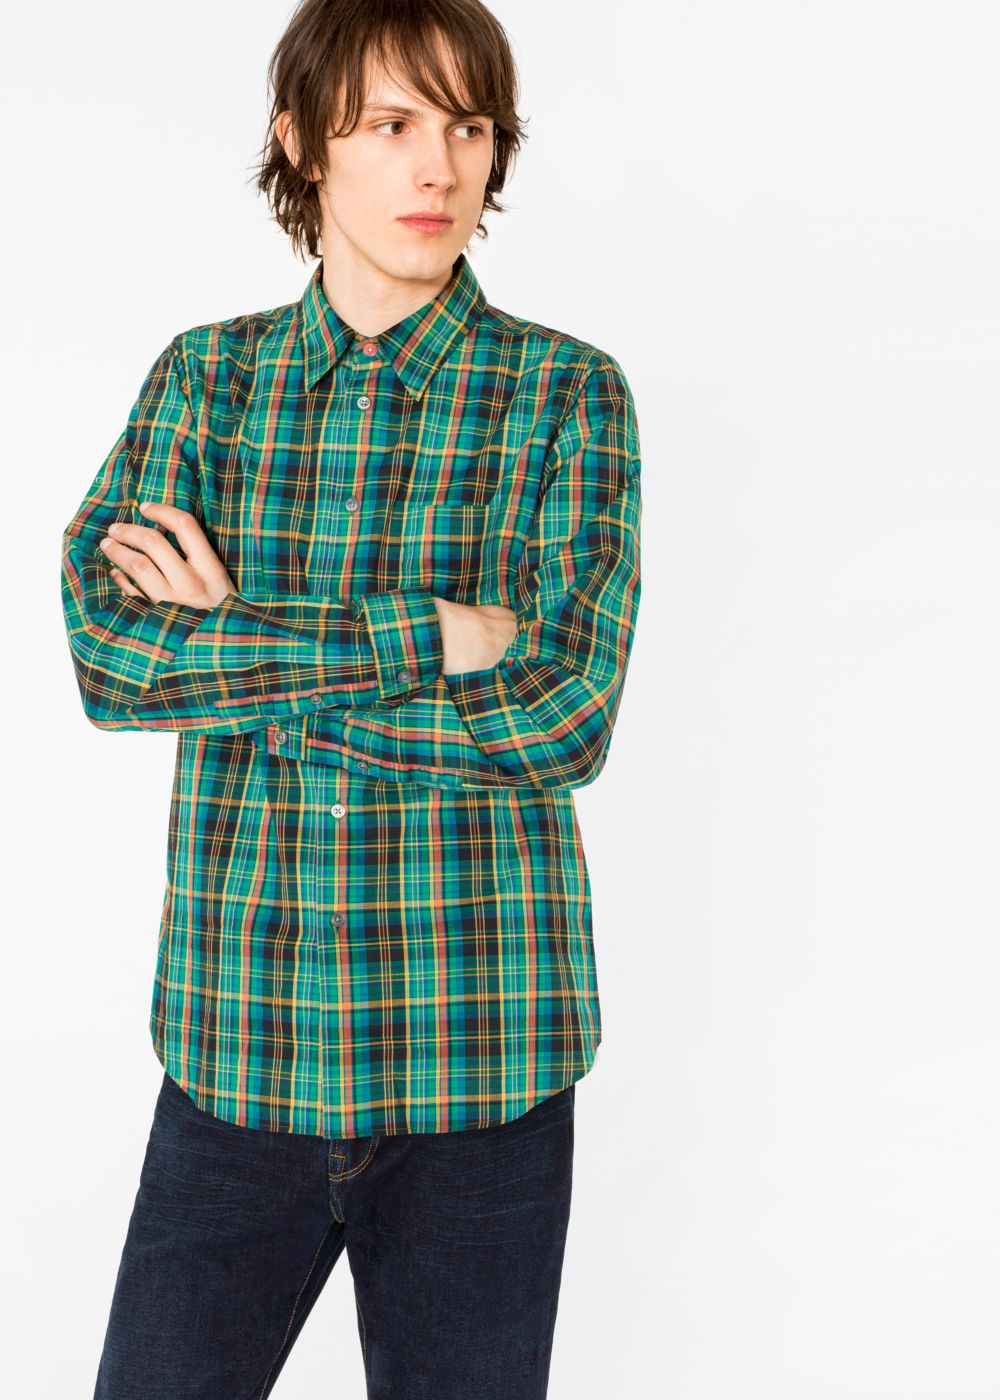 Paul Smith Men's Tailored-Fit Green Check Shirt